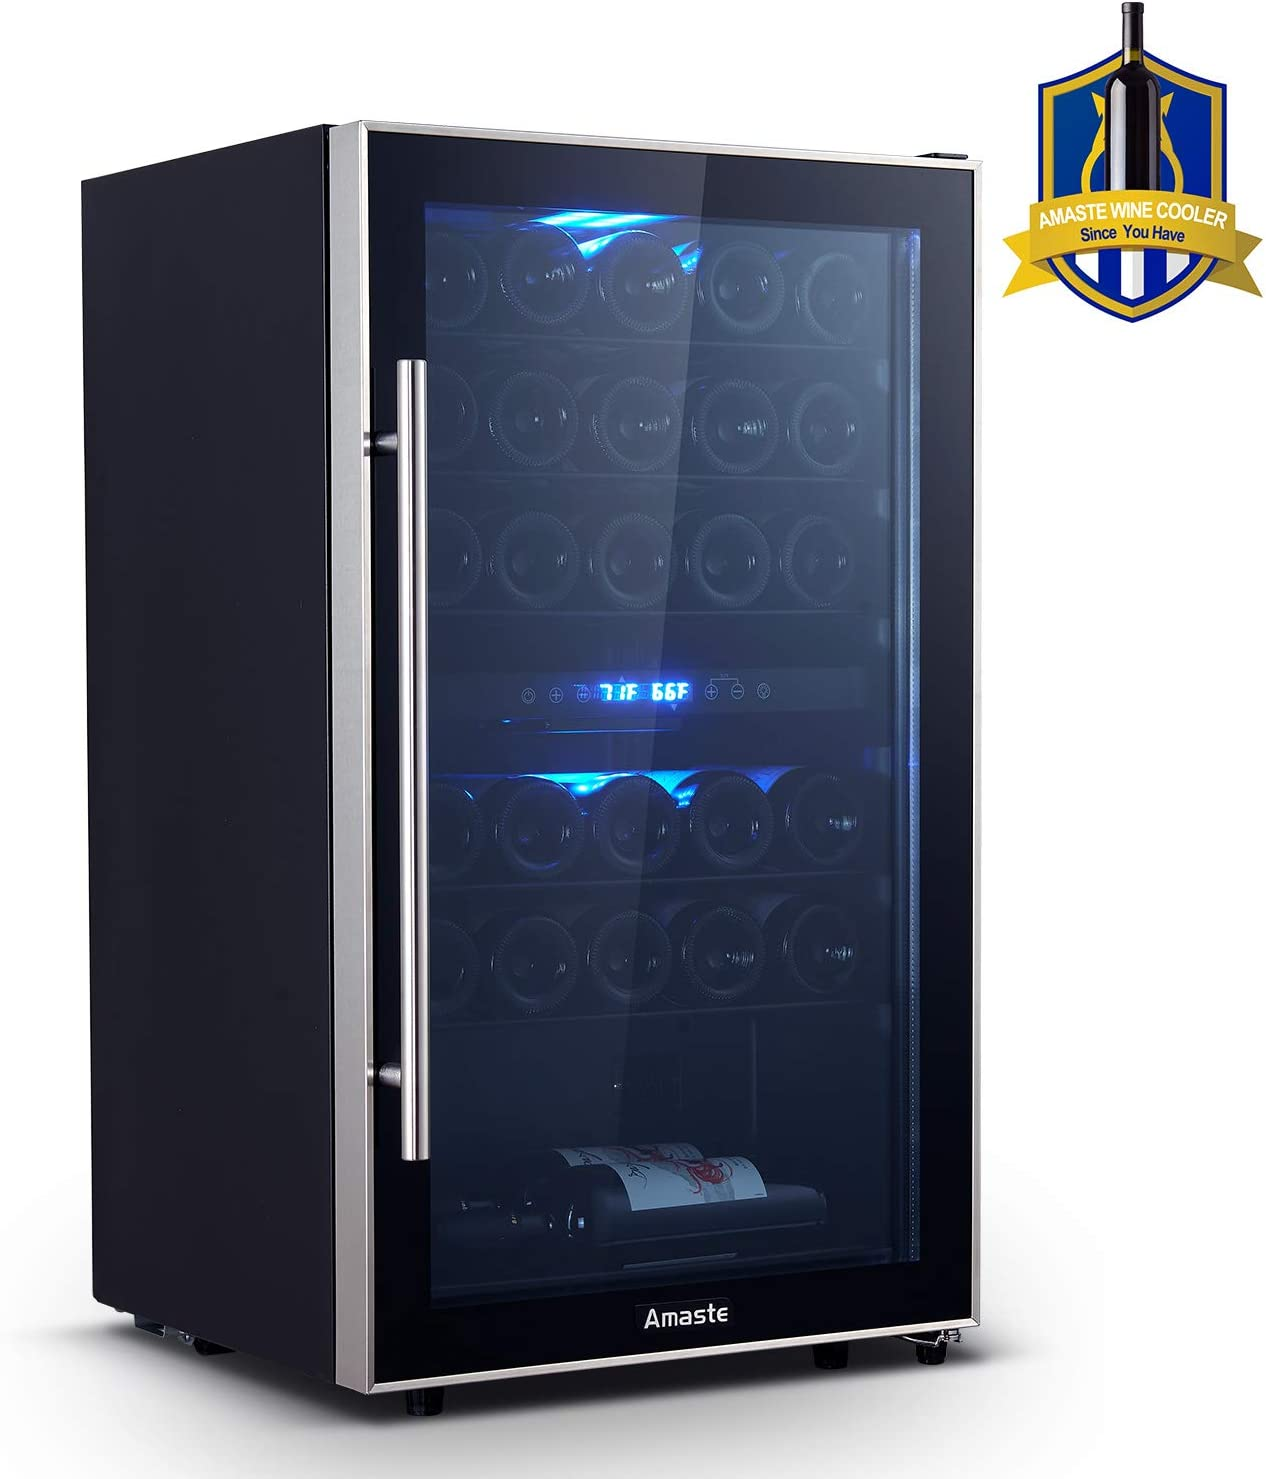 Amaste Wine Fridge, 29 Bottle Dual Zone Wine Cooler, Freestanding Wine Refrigerator with Double Pane Anti-UV Rays/Anti-frost Tempered Glass Door, High Efficiency Compressor, Stainless Steel Shelves, Blue LED Light, Reversible Door, Independent Temperature Control and Touch Control - MWC29